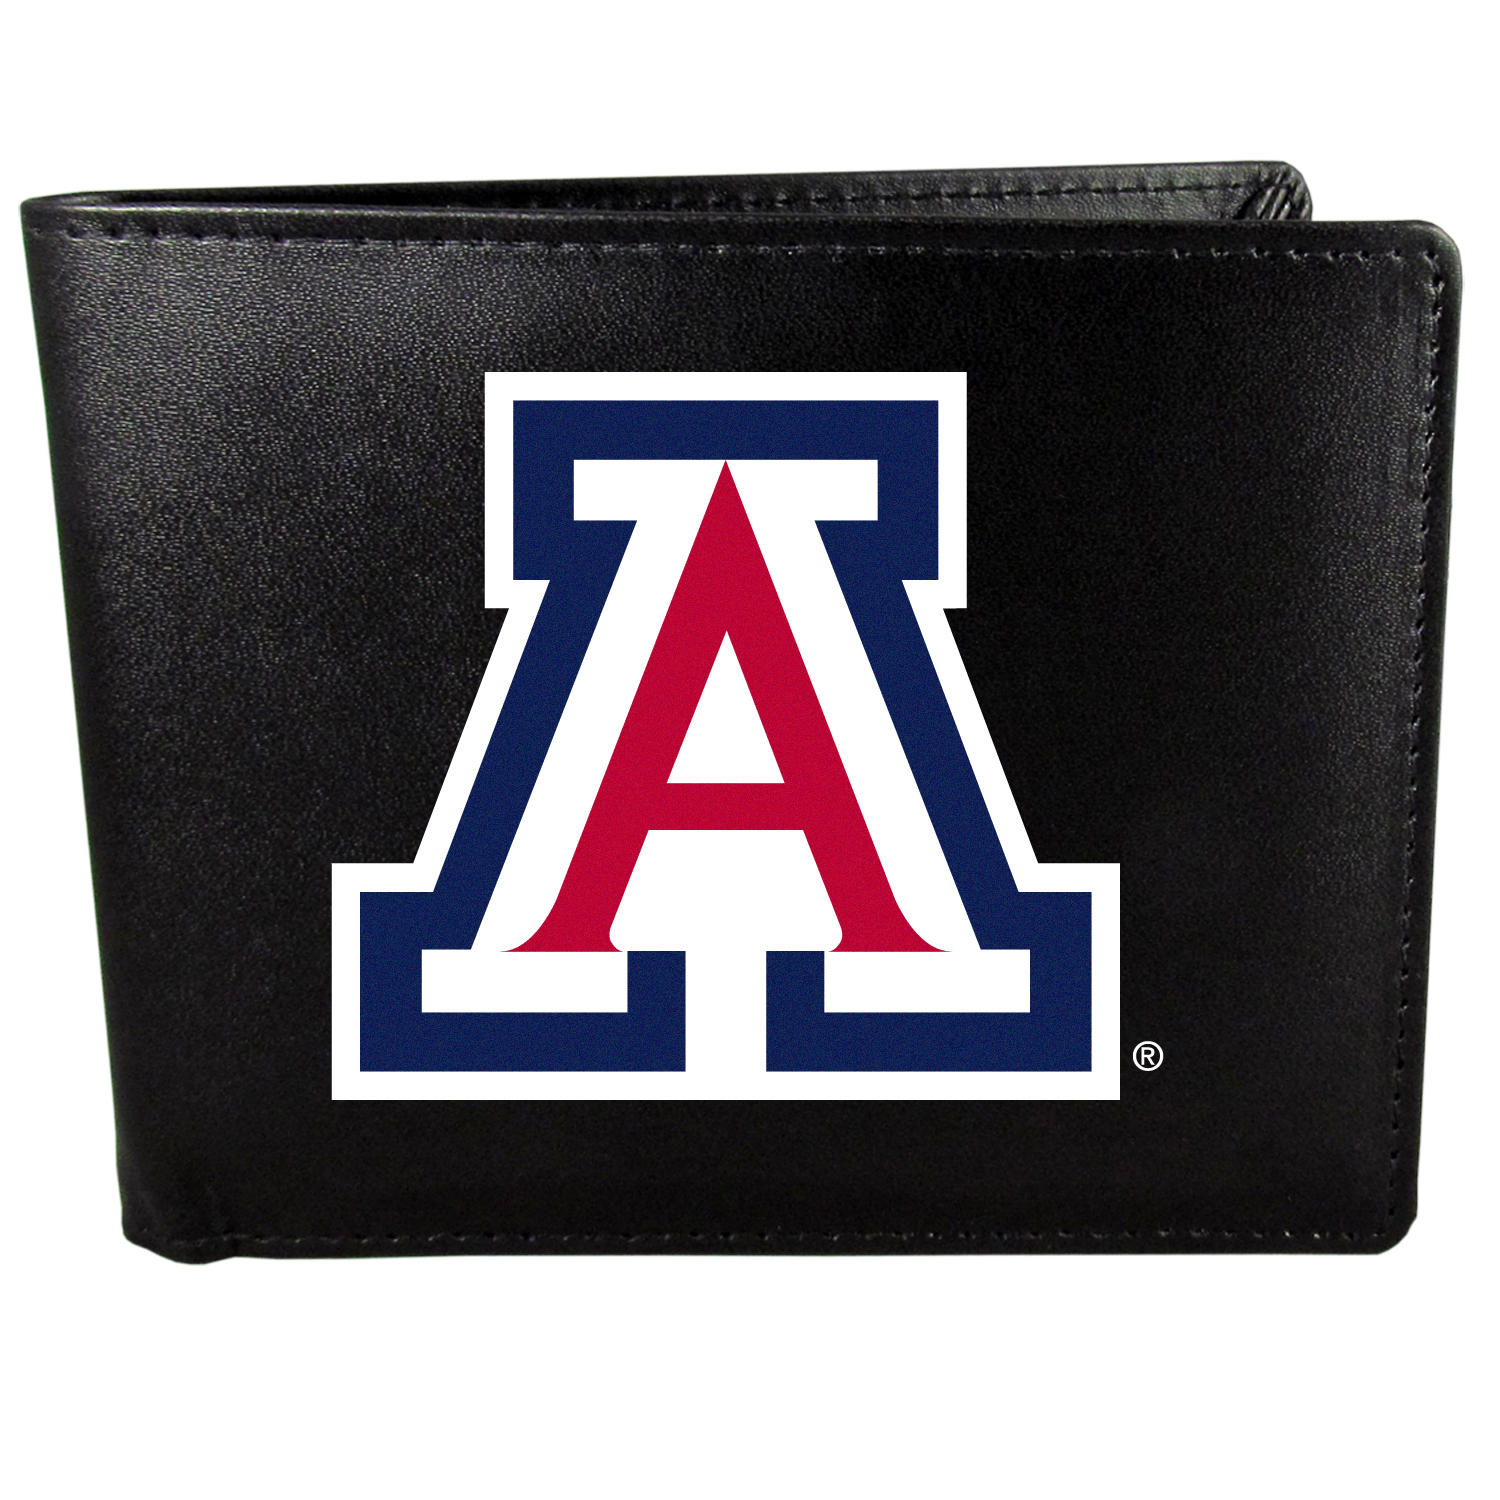 Arizona Wildcats Bi-fold Wallet Large Logo - Sports fans do not have to sacrifice style with this classic bi-fold wallet that sports the Arizona Wildcats?extra large logo. This men's fashion accessory has a leather grain look and expert craftmanship for a quality wallet at a great price. The wallet features inner credit card slots, windowed ID slot and a large billfold pocket. The front of the wallet features a printed team logo.